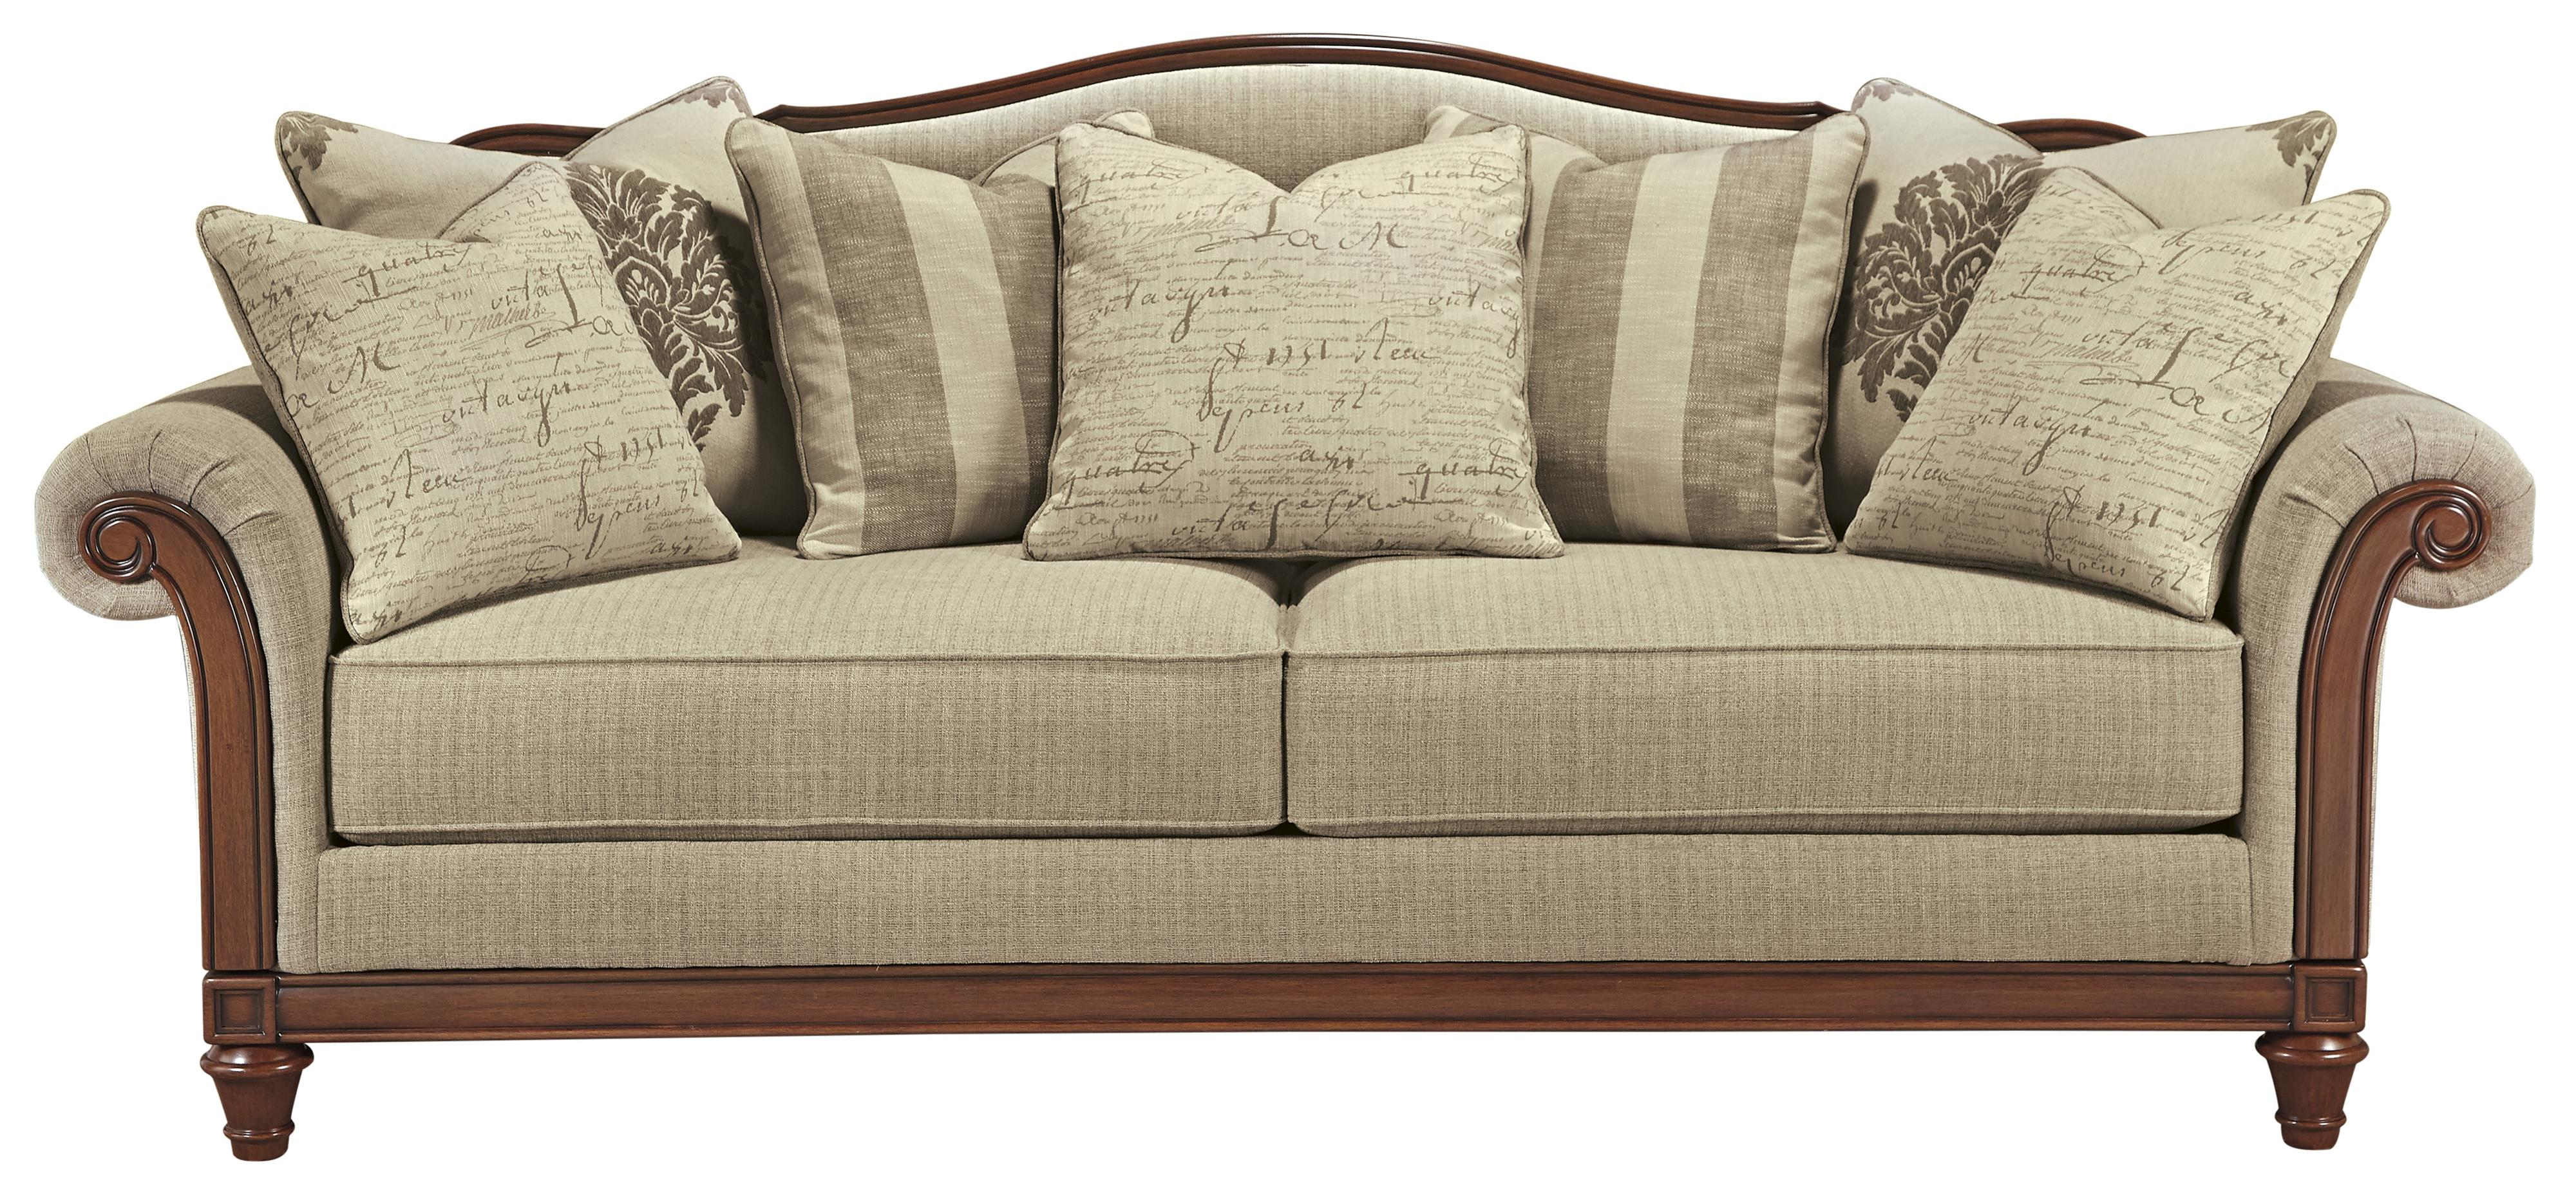 Signature Design by Ashley Berwyn View Sofa - Item Number: 8980338